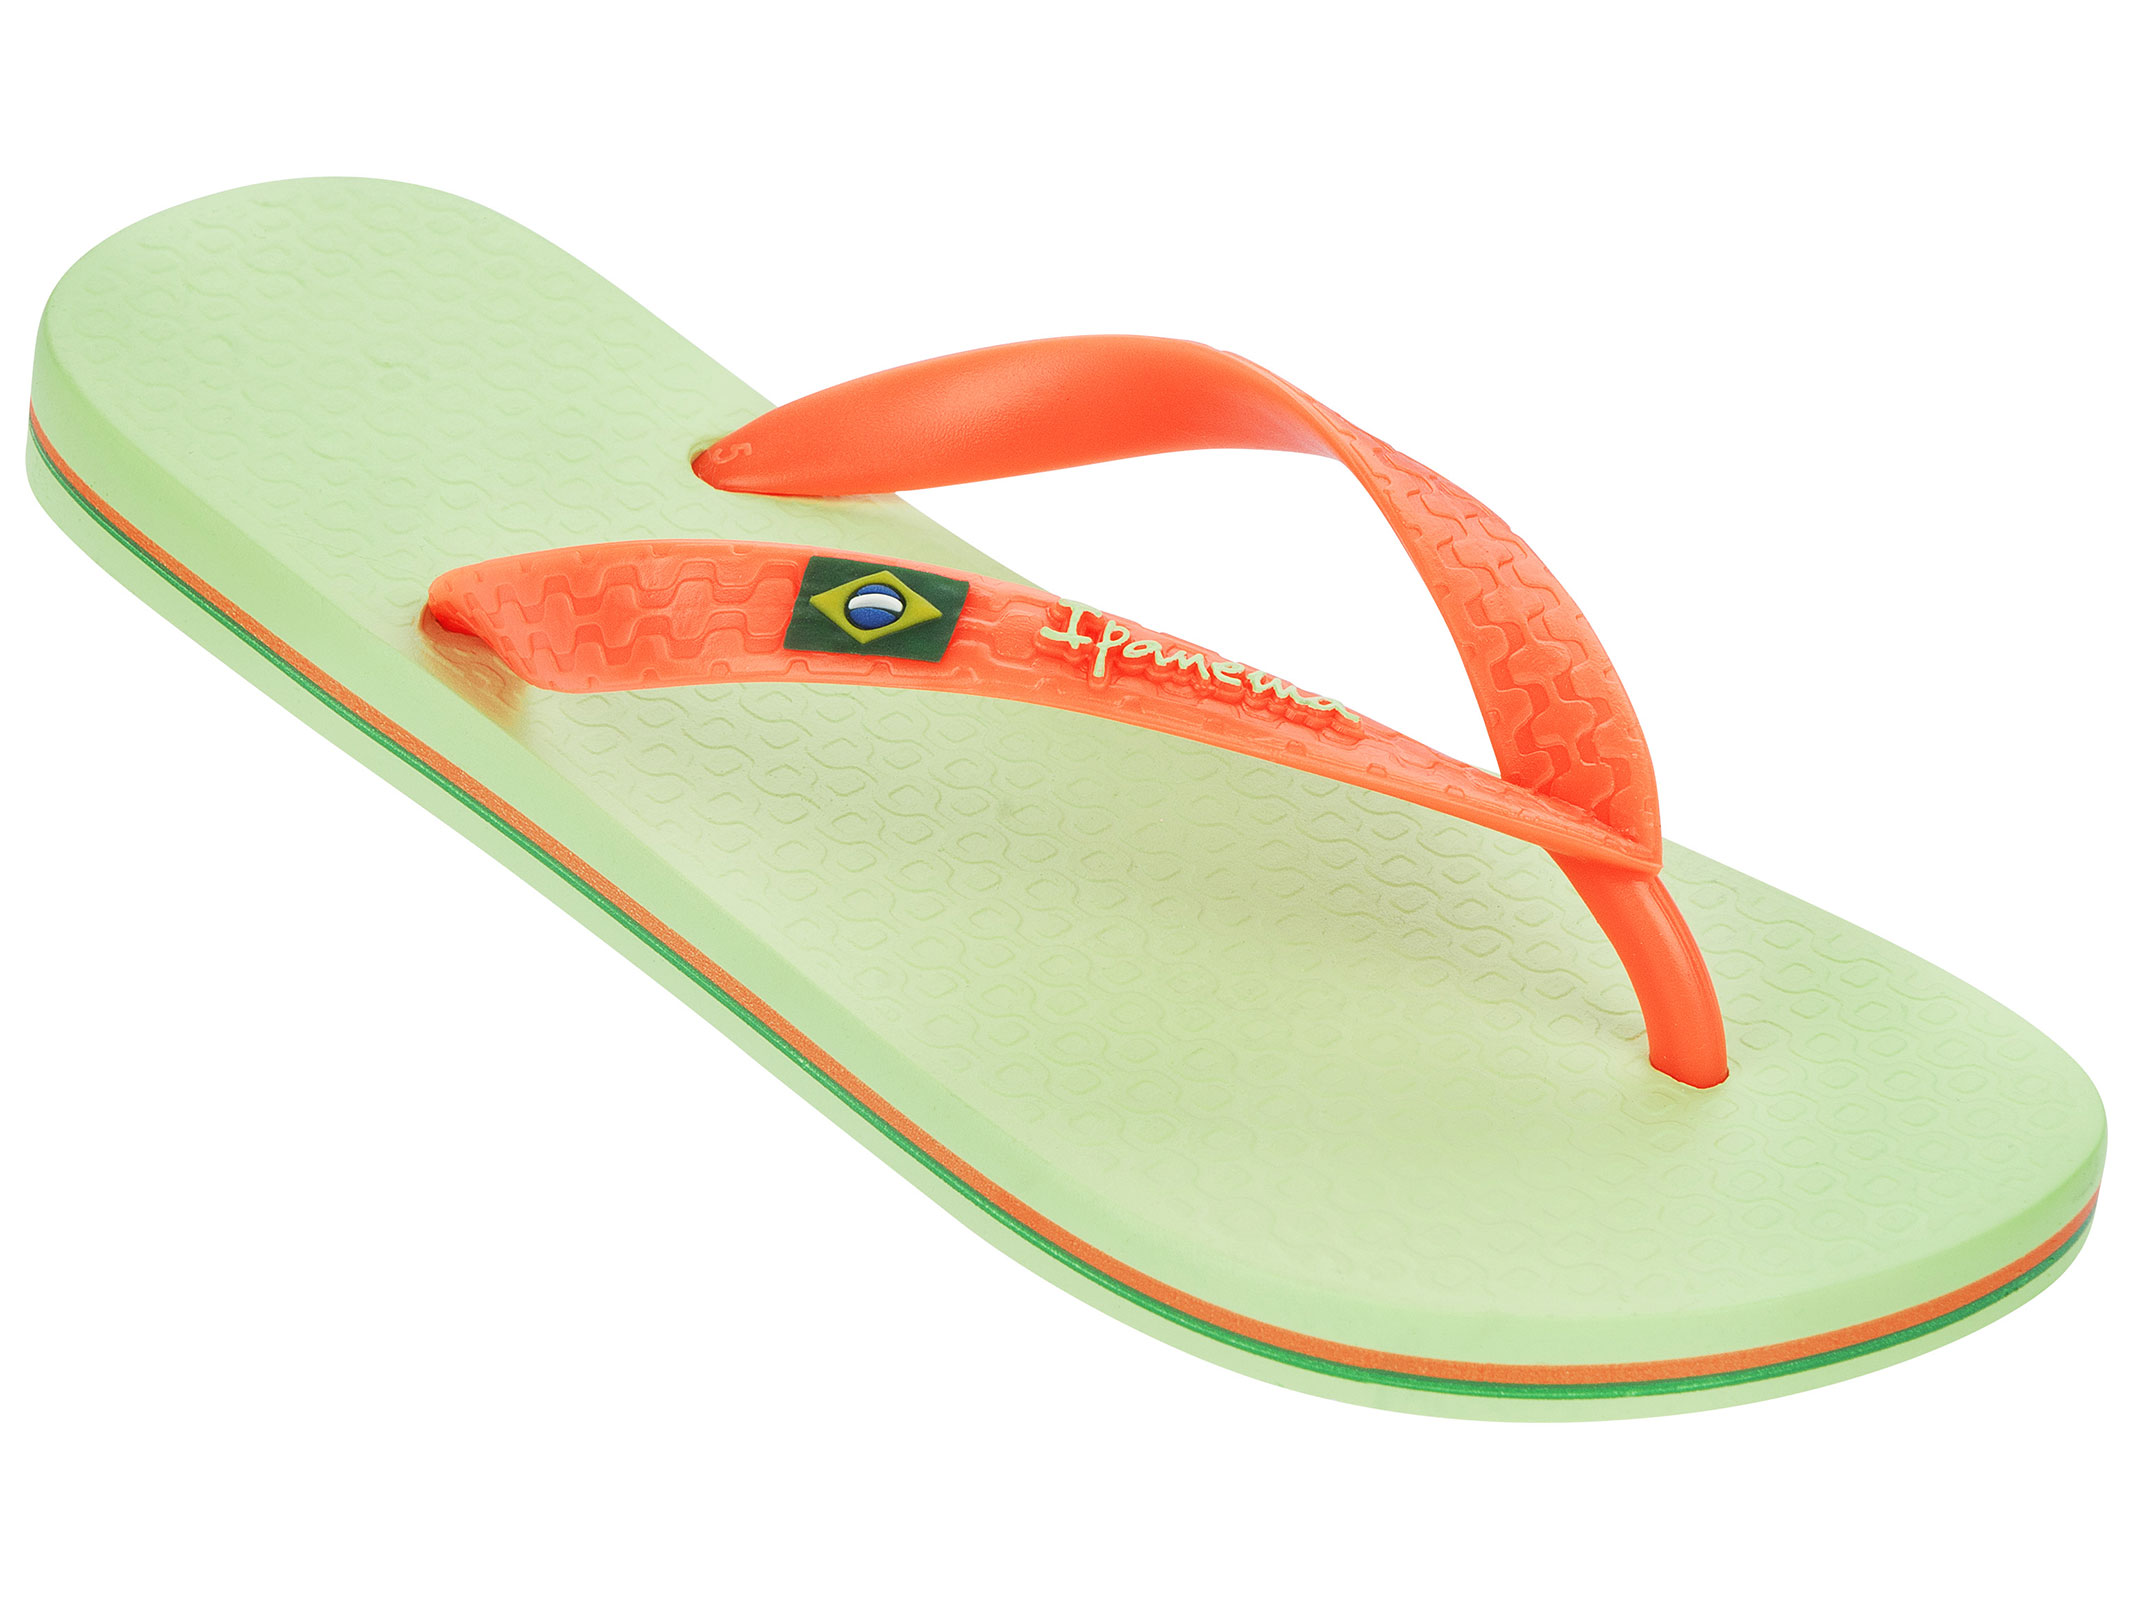 Light Green And Orange Two-coloured Flip-flops - Classica Brasil Ii - Green/orange